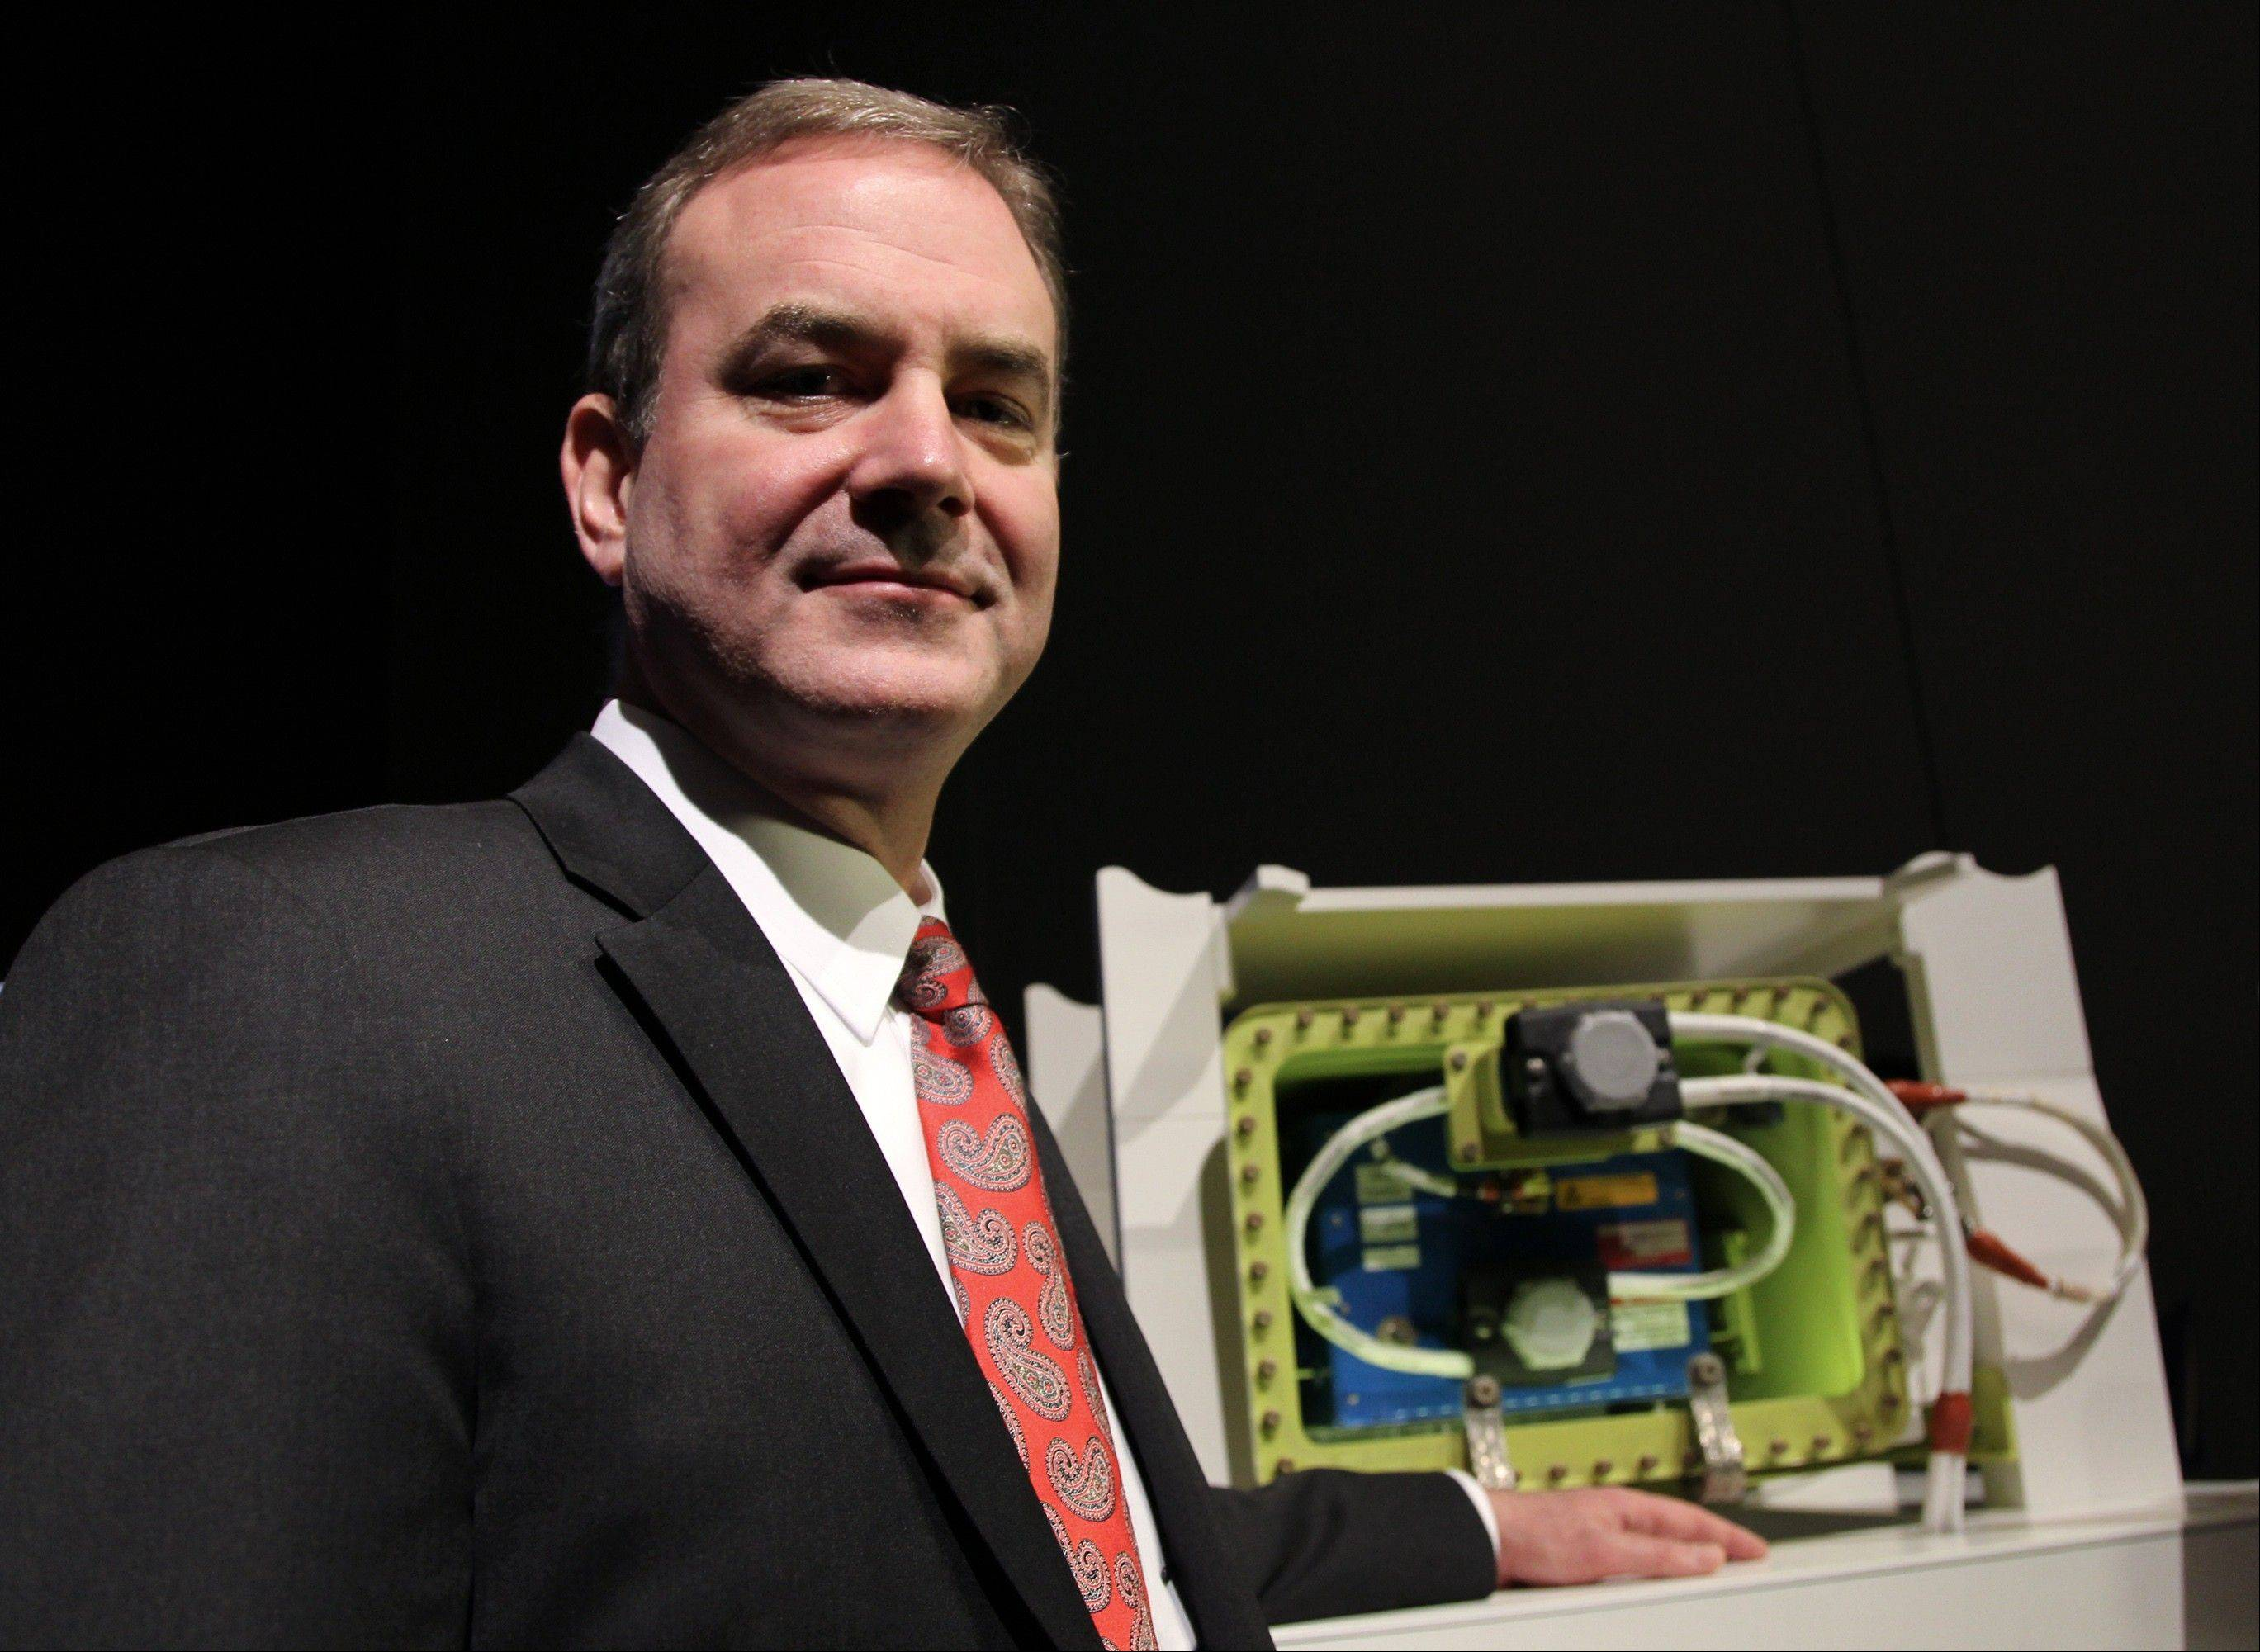 Mike Sinnett, vice president at Boeing Commercial Airplanes and chief project engineer of the 787 program, poses for a photograph with a model of the newly redesigned battery for Boeing Co.'s 787 Dreamliner during a news conference in Tokyo, Japan, last Friday, March 15.